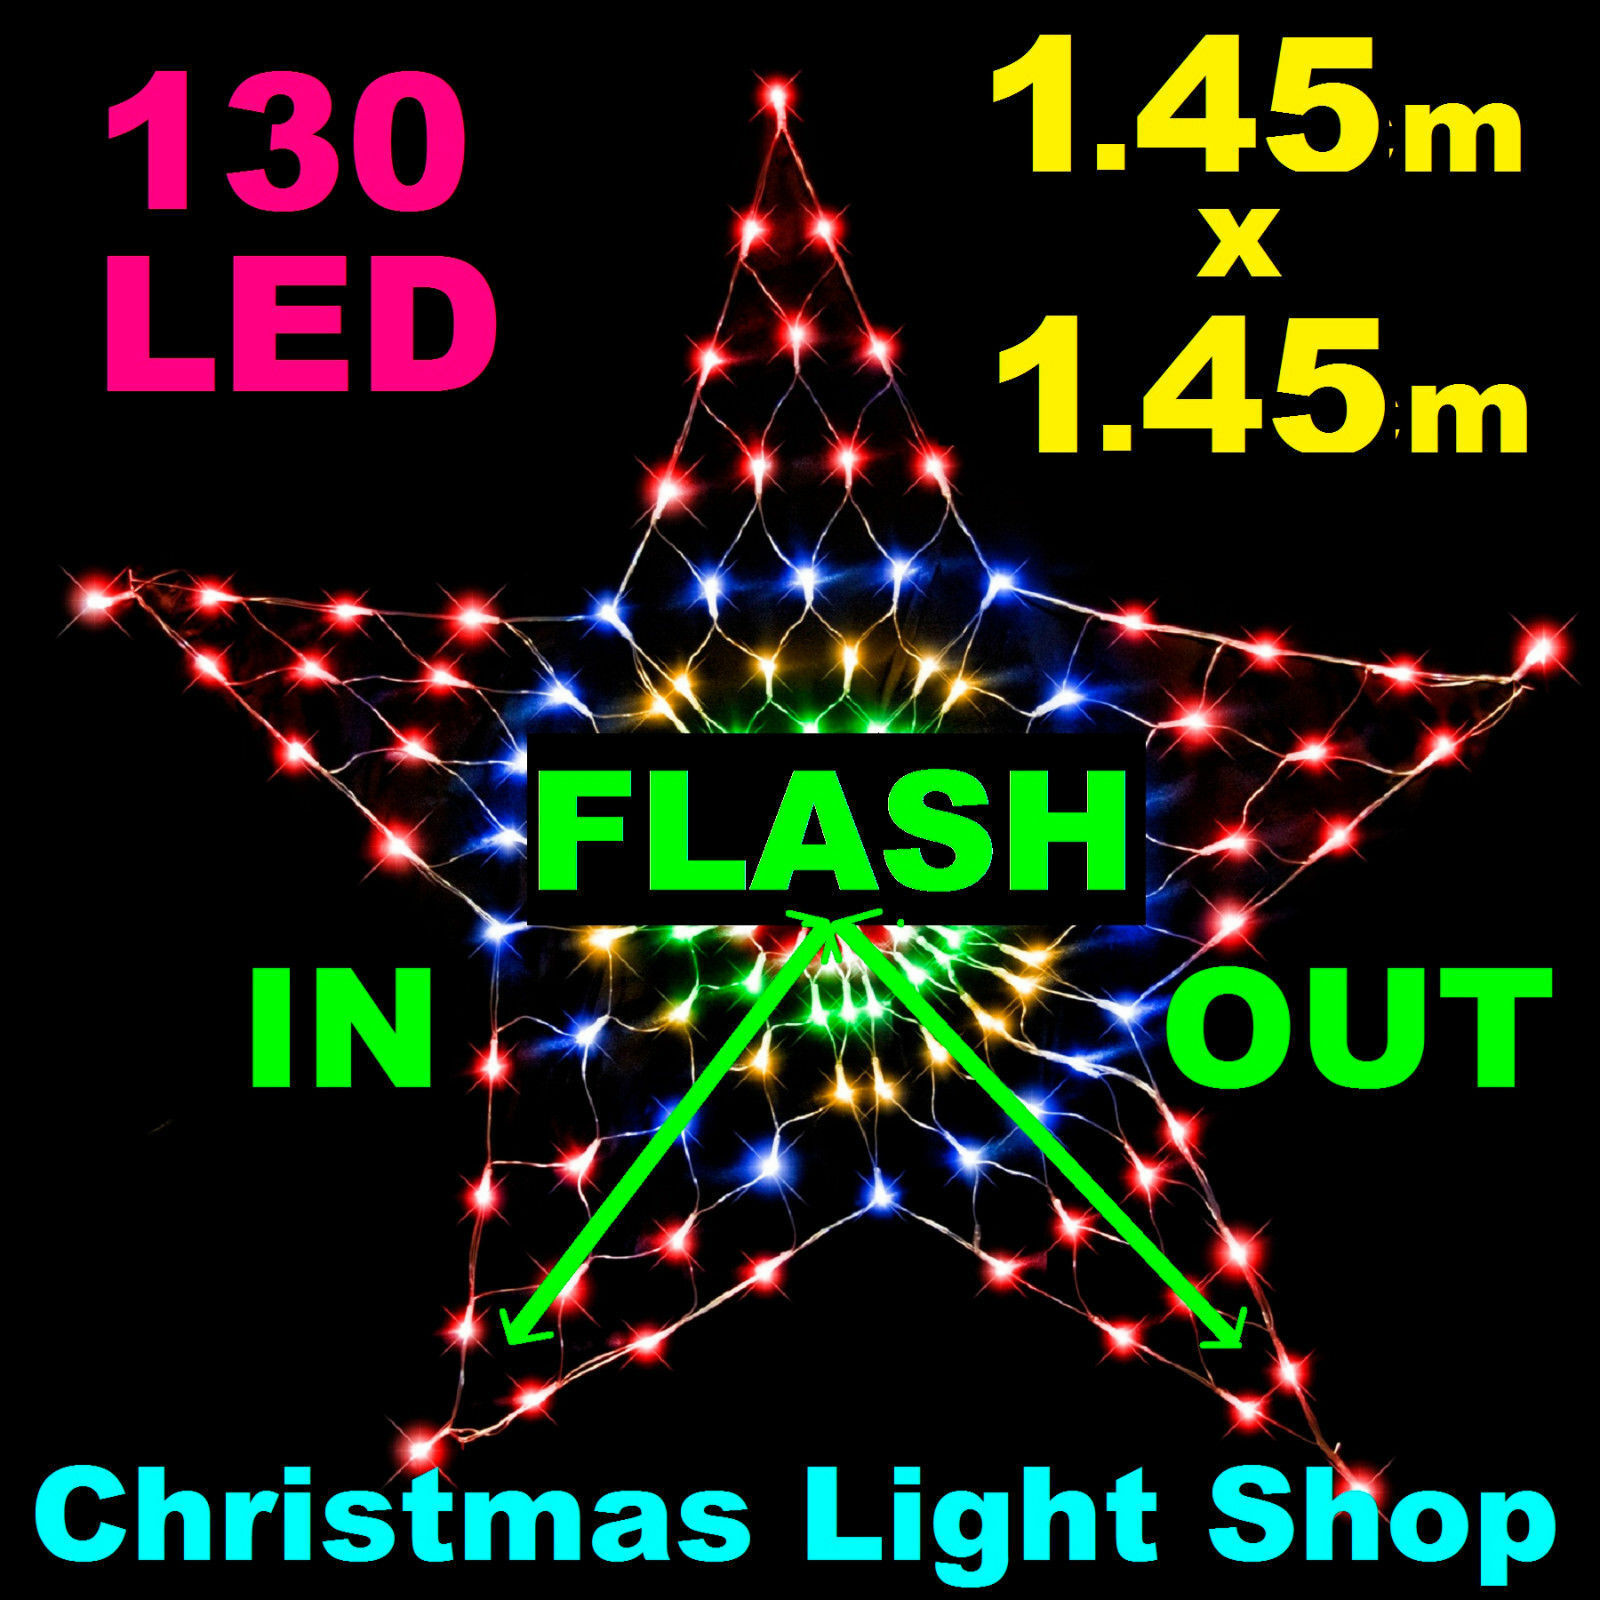 45CM STAR NET LIGHT MULTI COLOUR FLASHING 130 LED XMAS CHRISTMAS WINDOW XM0592